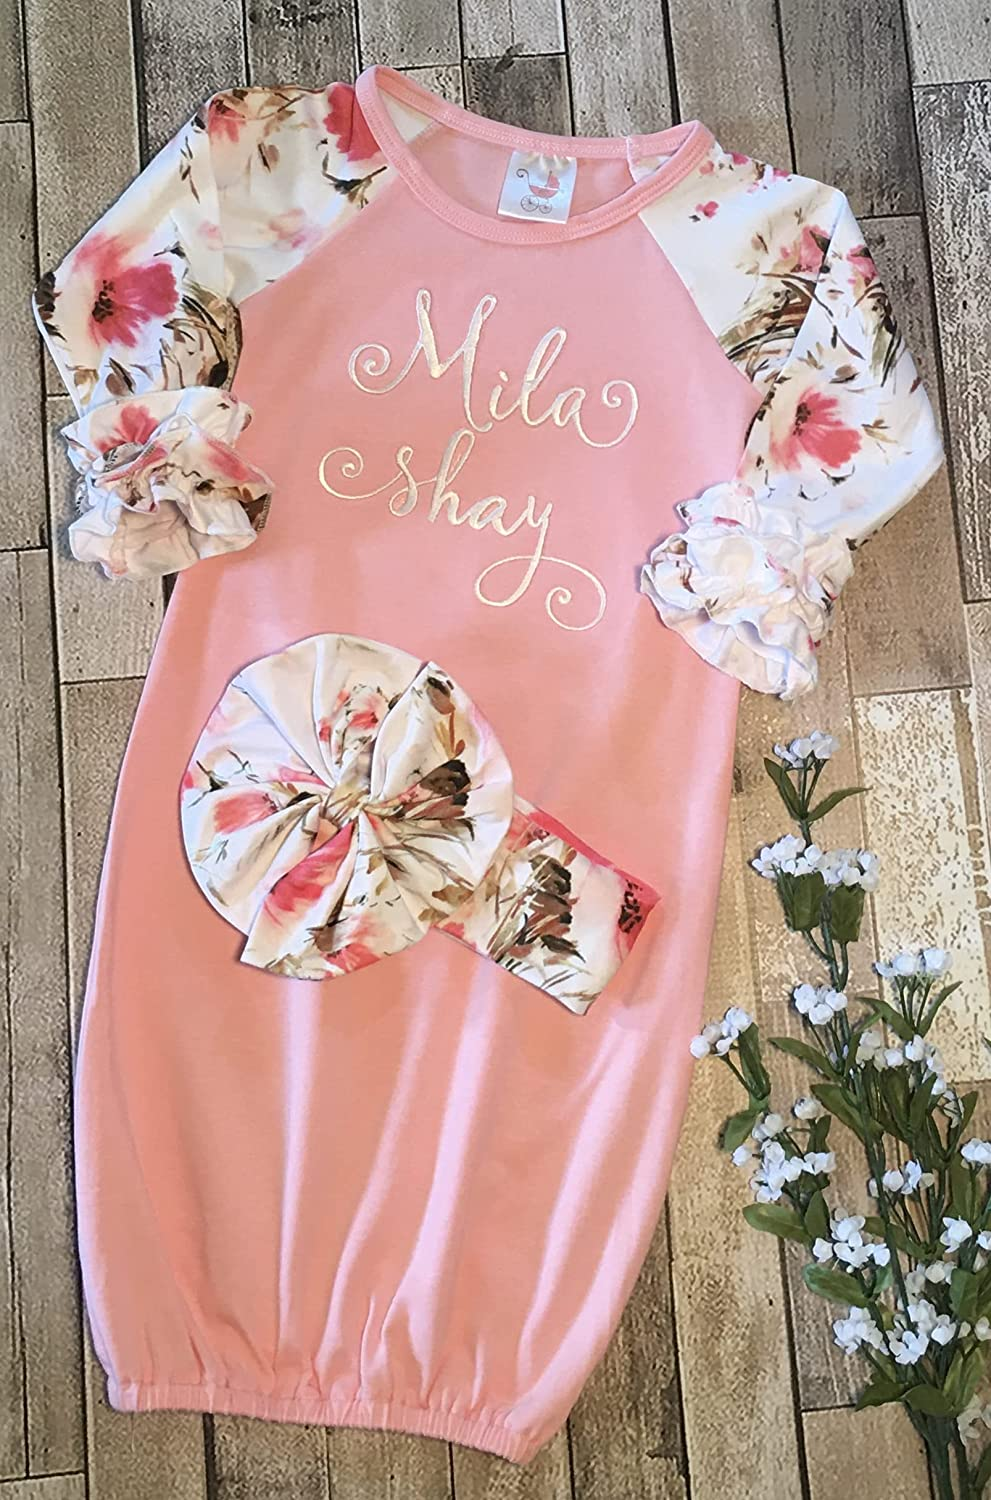 Newborn Gown Baby Girl Monogram Initial Floral Custom Embroidery Coming Home Outfit Flowers Pink